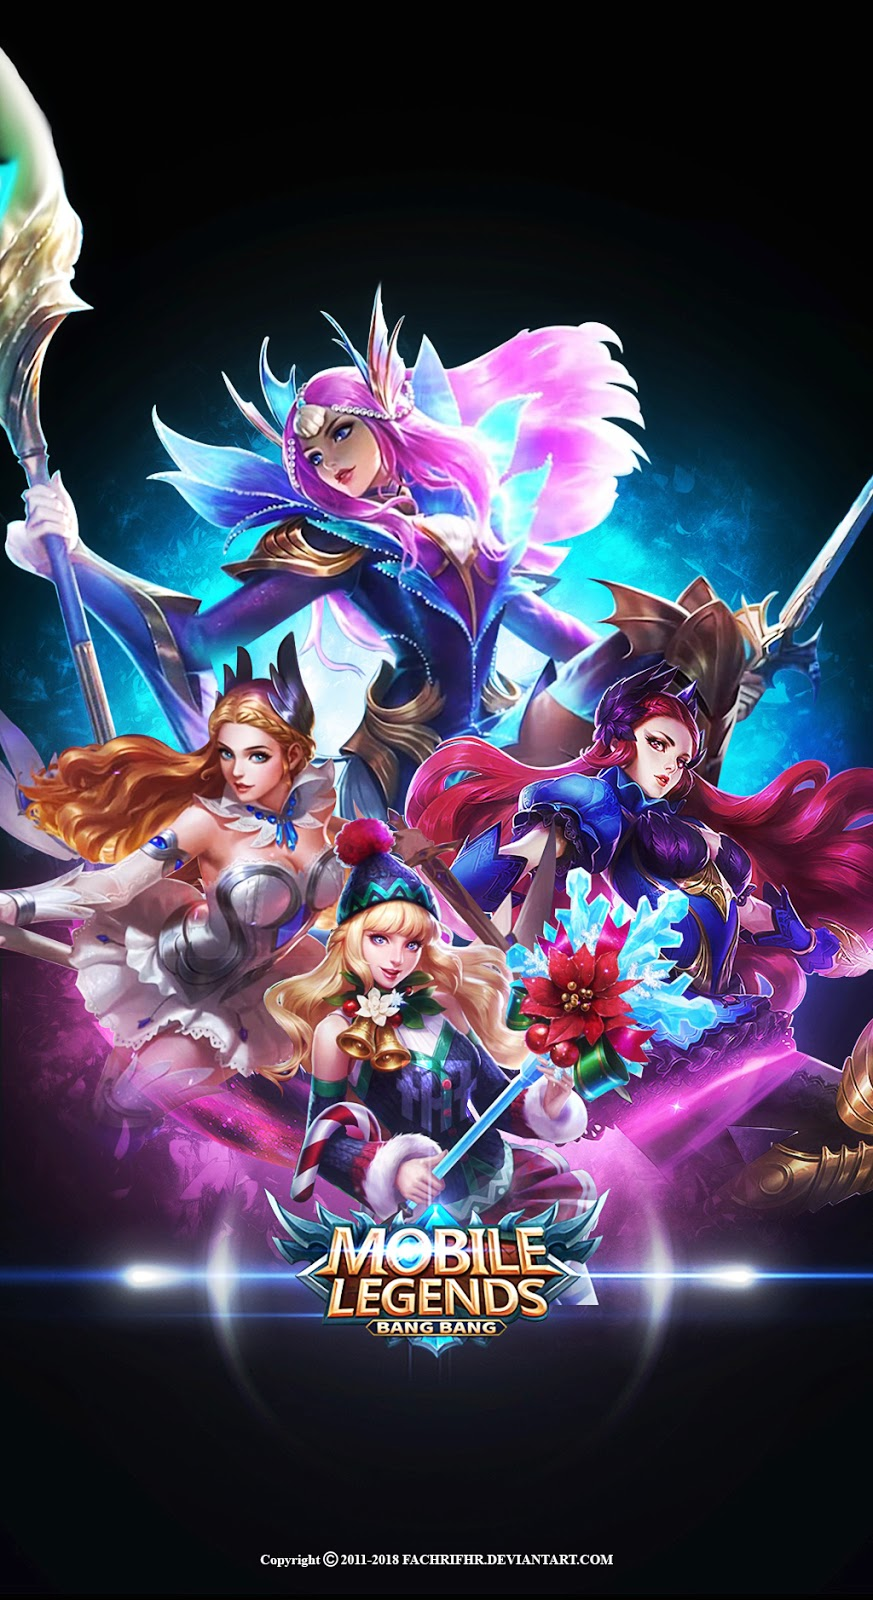 70 Wallpaper HD Mobile Legends Paling Baru 2018 Free Download